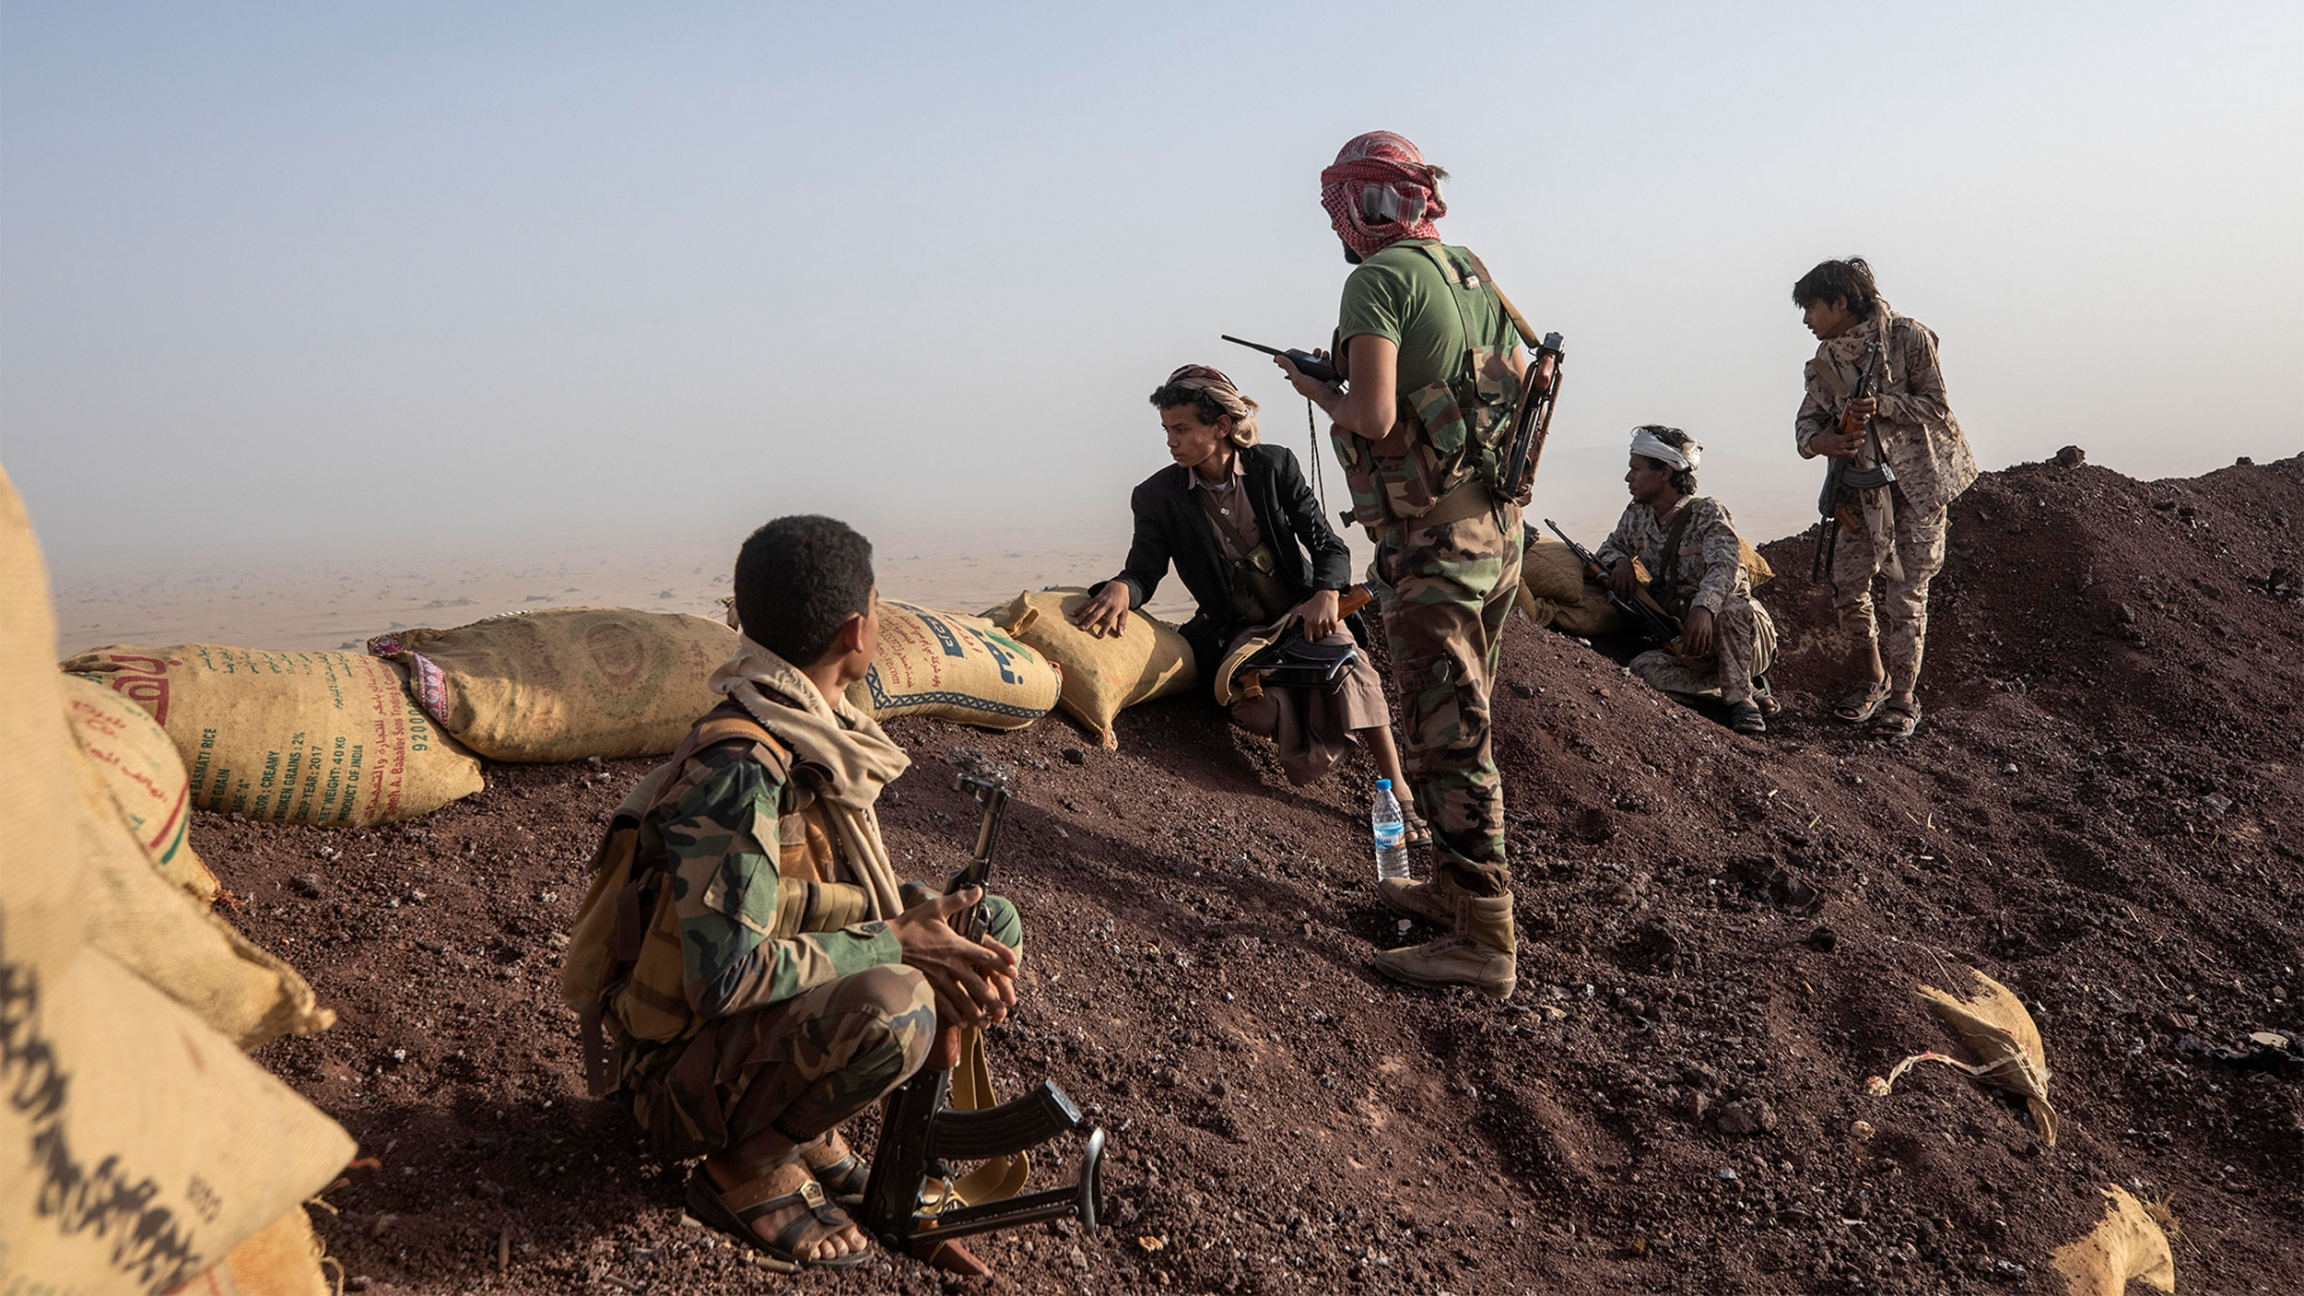 Yemeni fighters look over a mound of soil lined with sandbags